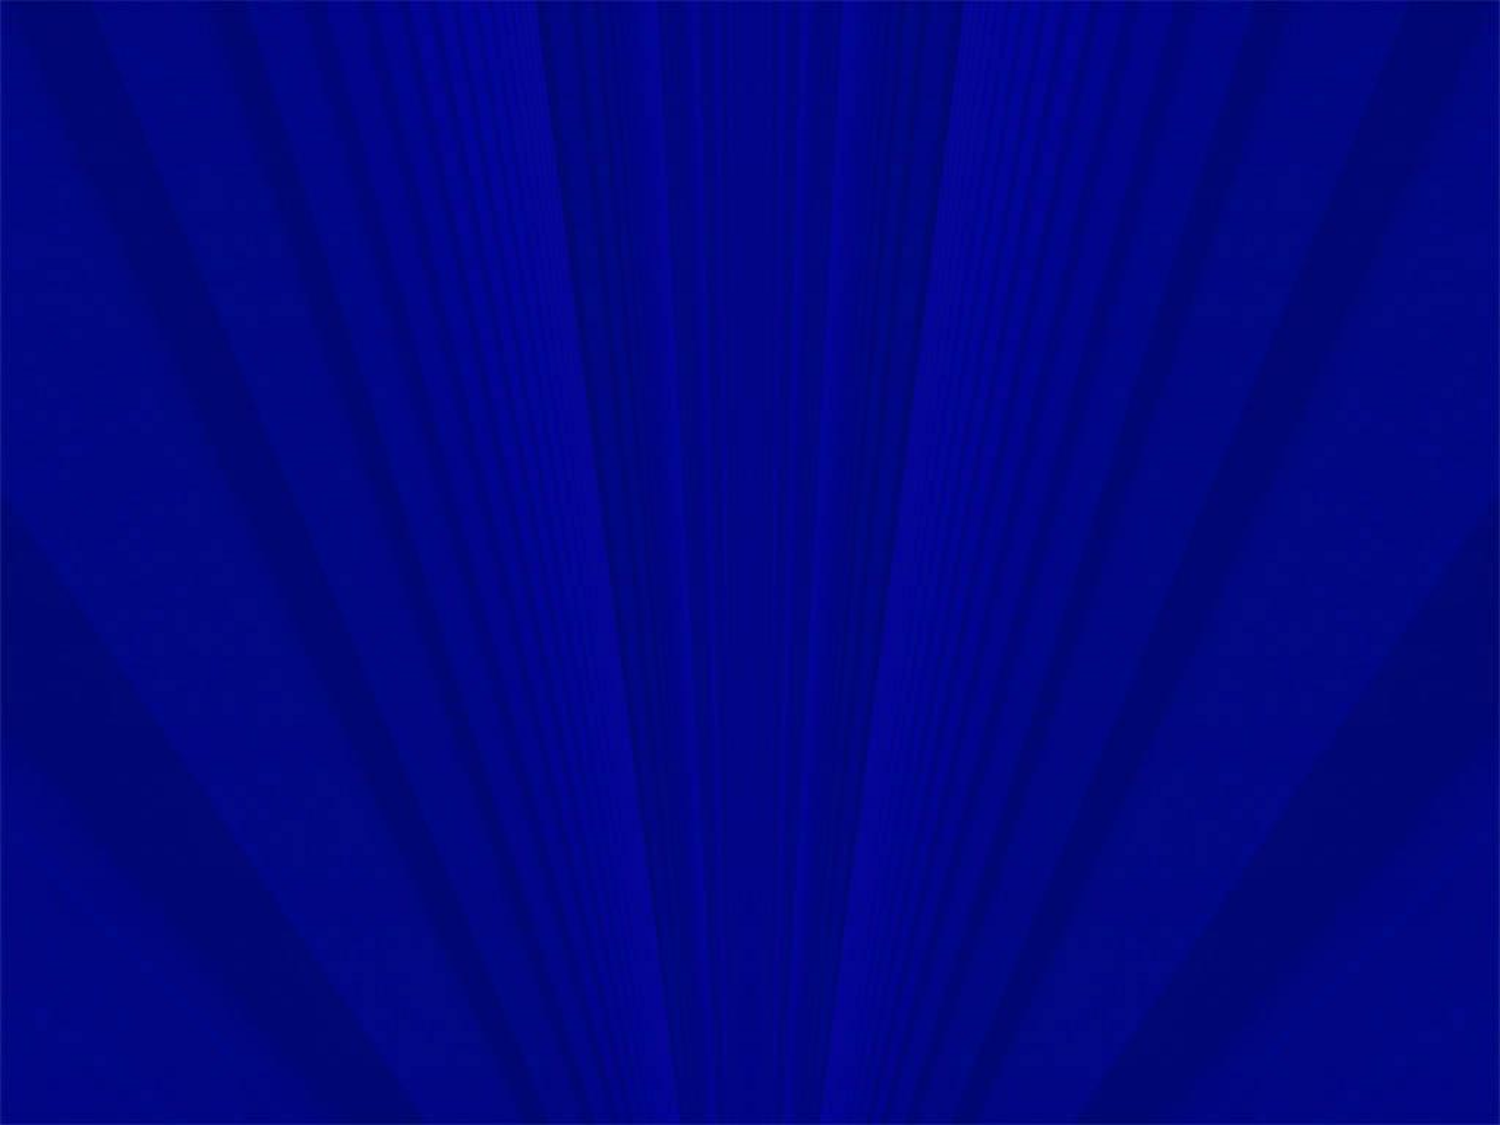 Royal Blue Backgrounds Wallpaper Cave Royal Blue Wallpaper Blue Wallpaper Iphone Blue Background Images